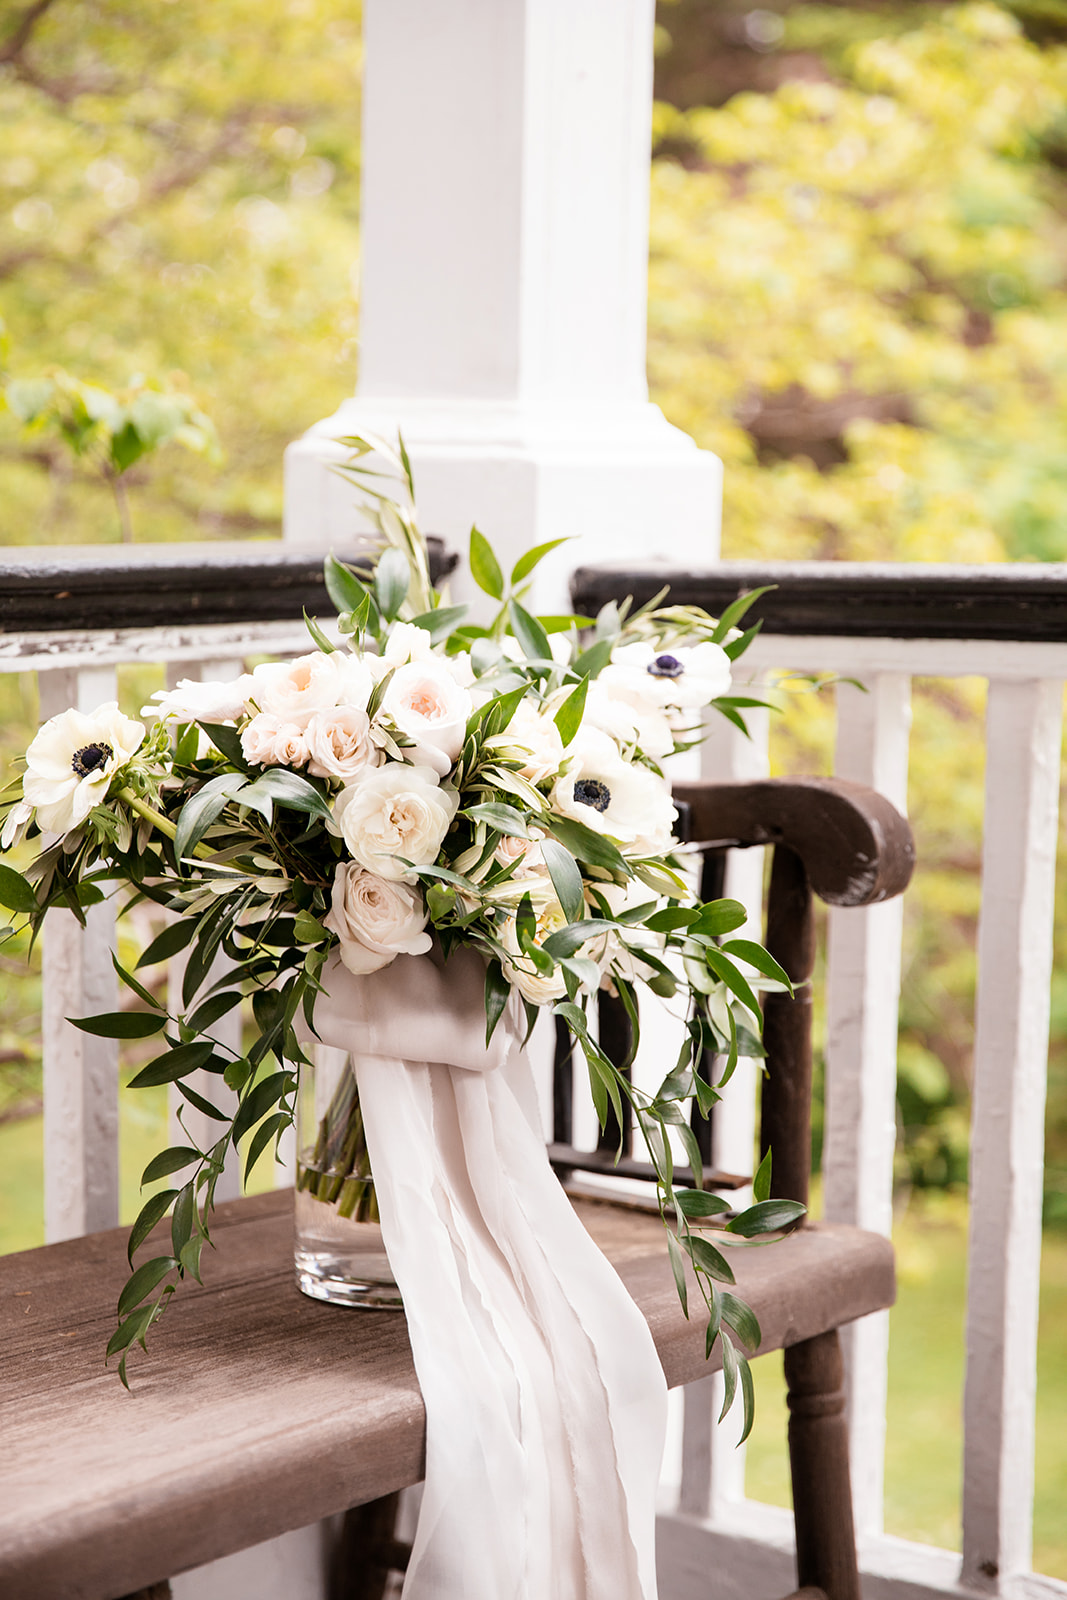 Stephanie  Kels Elegant Southern Wedding at Tuckahoe Plantation - Image Property of www.j-dphoto.com